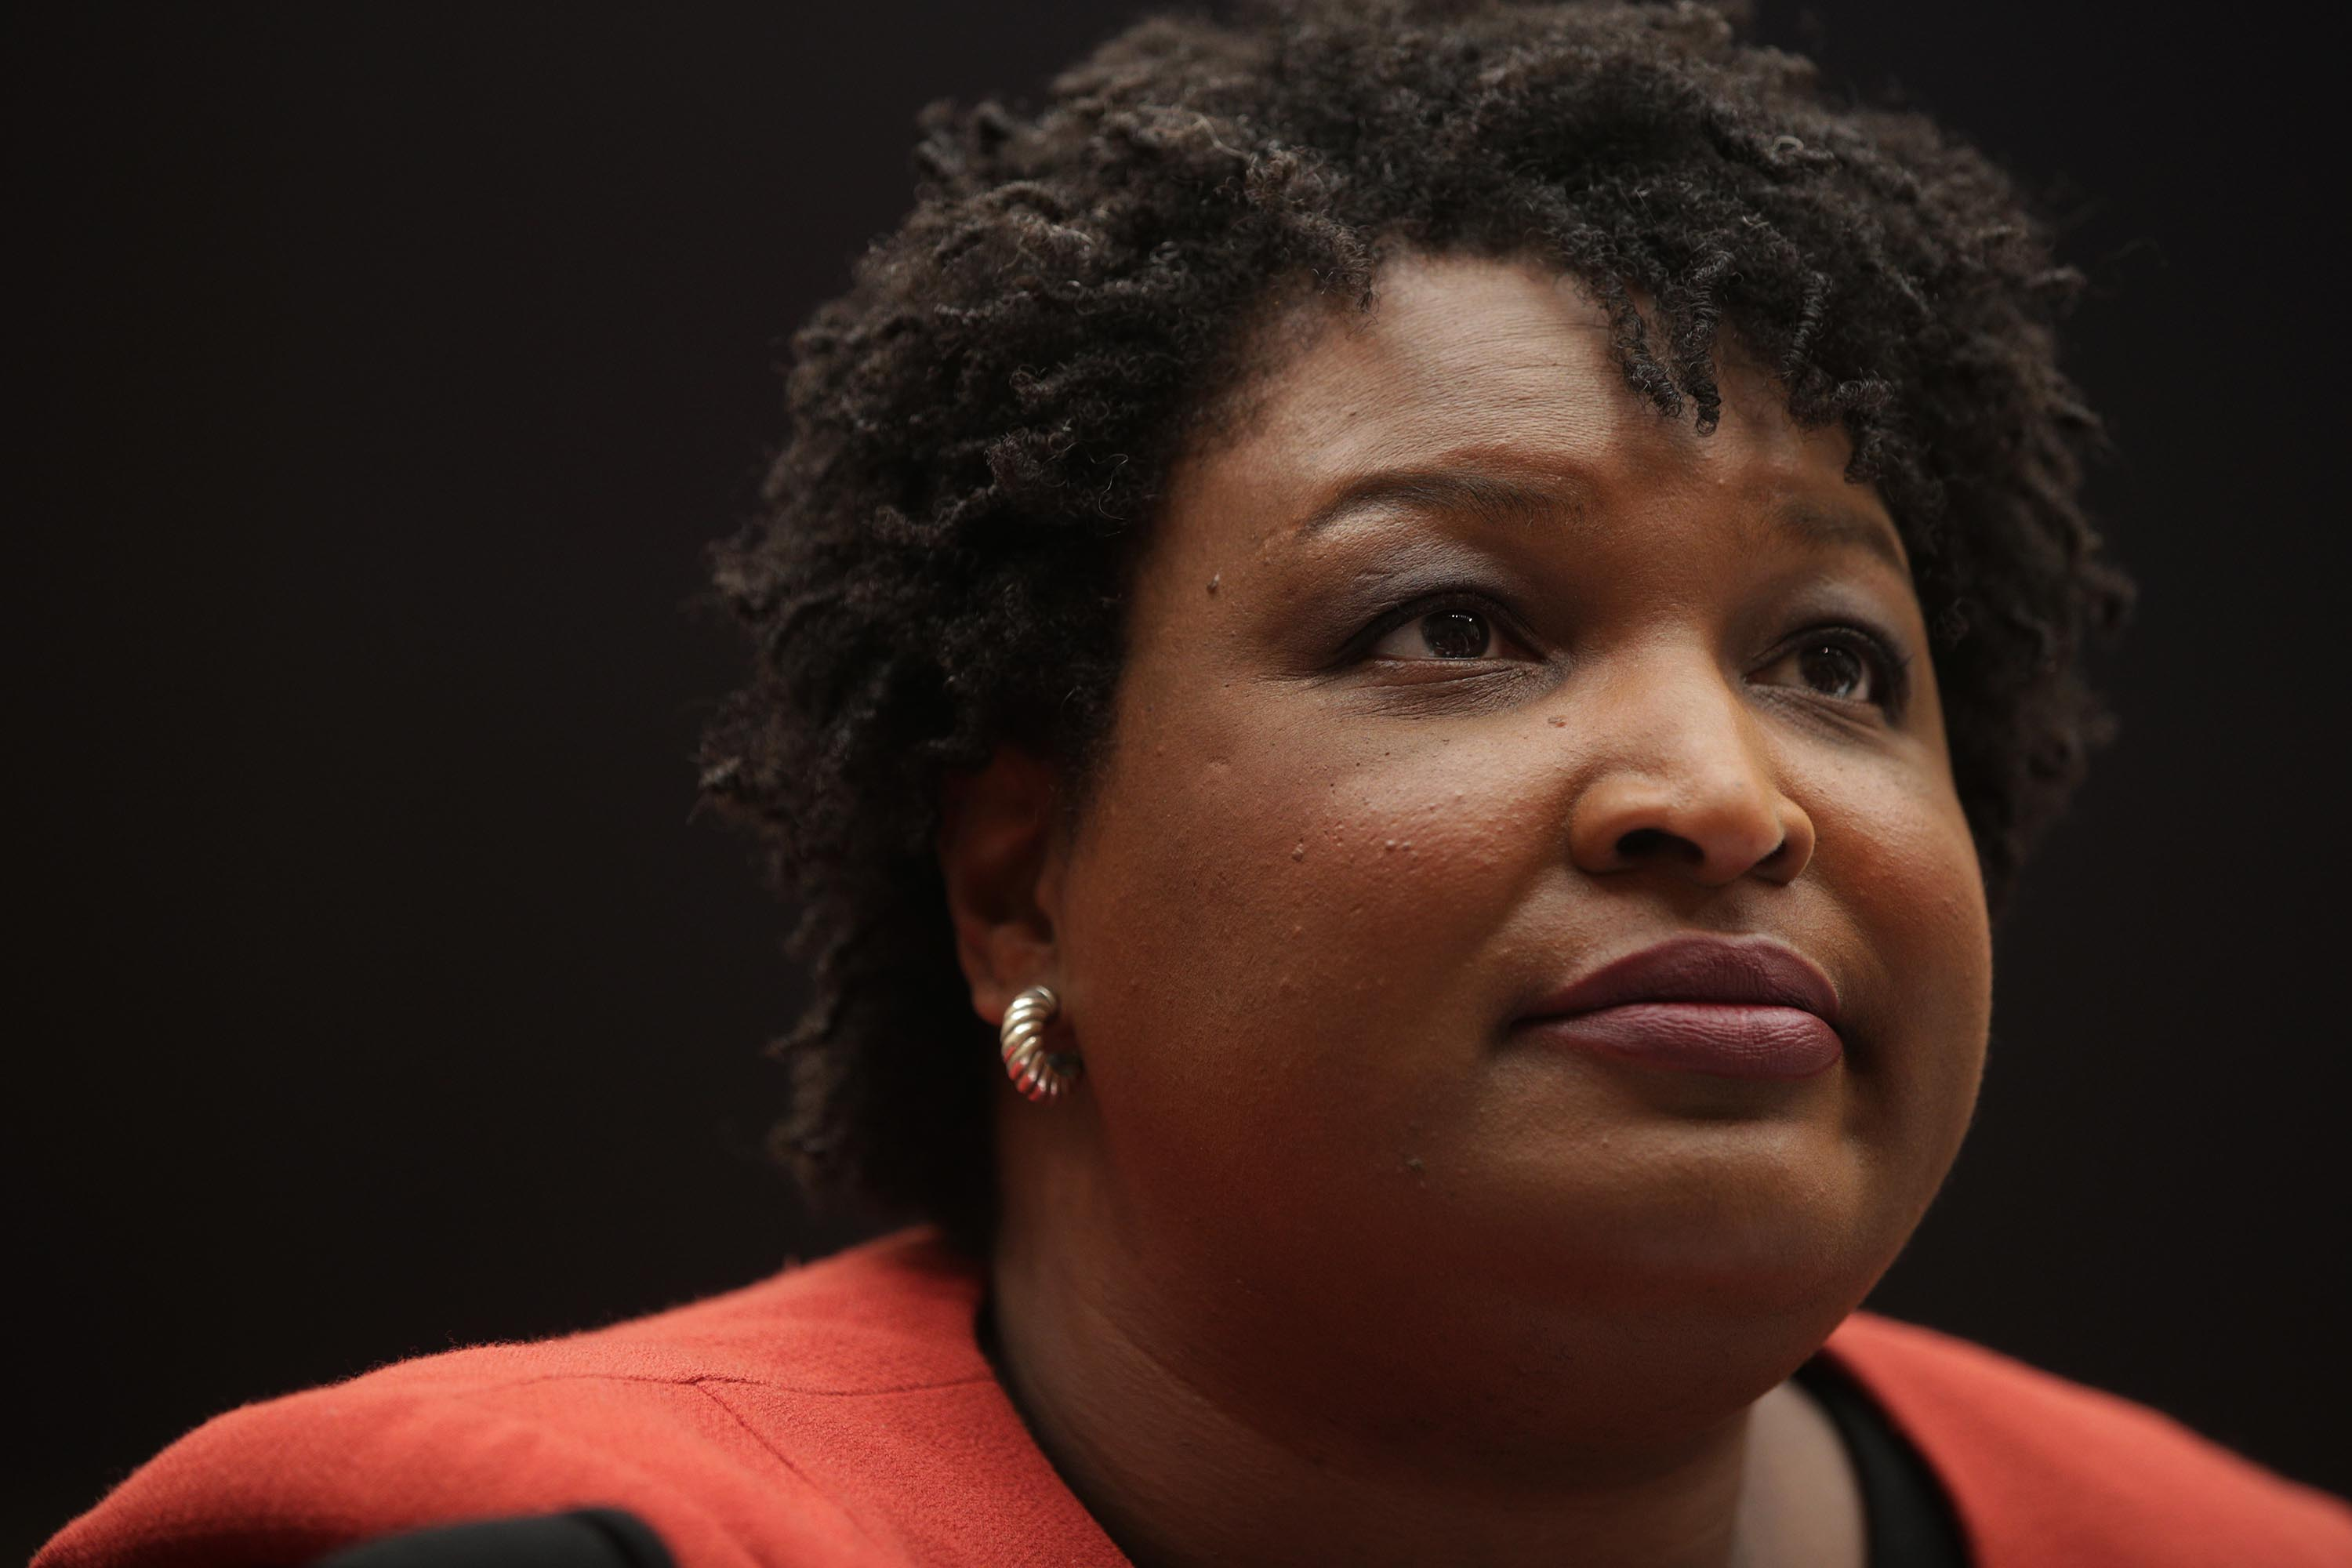 3 romance novels by Stacey Abrams to be re-released